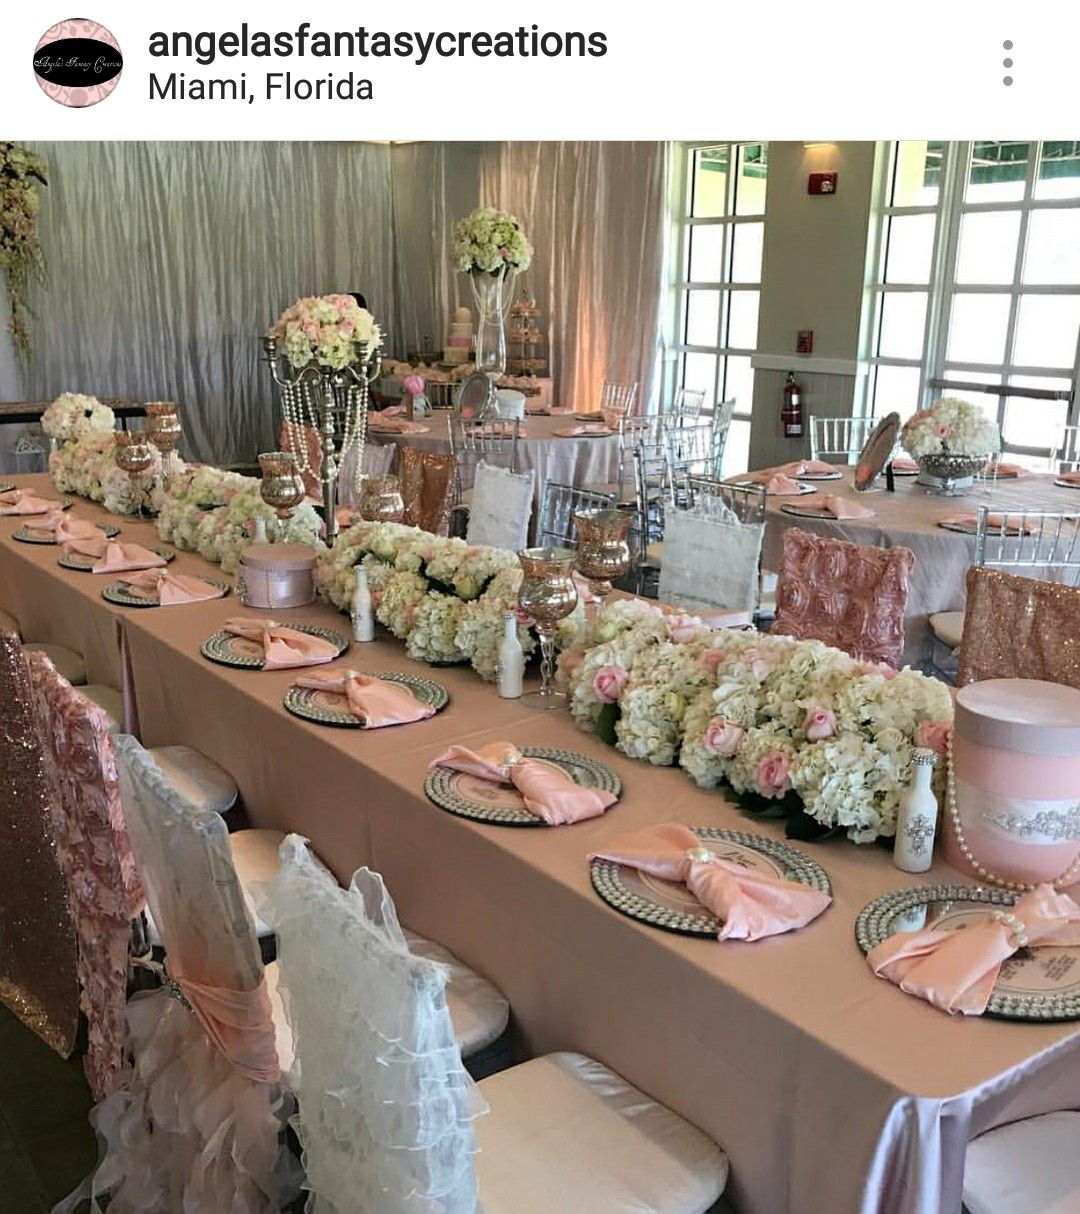 Yacht wedding decoration ideas  Pink and white Floral Wedding Reception Table Setting and Decor